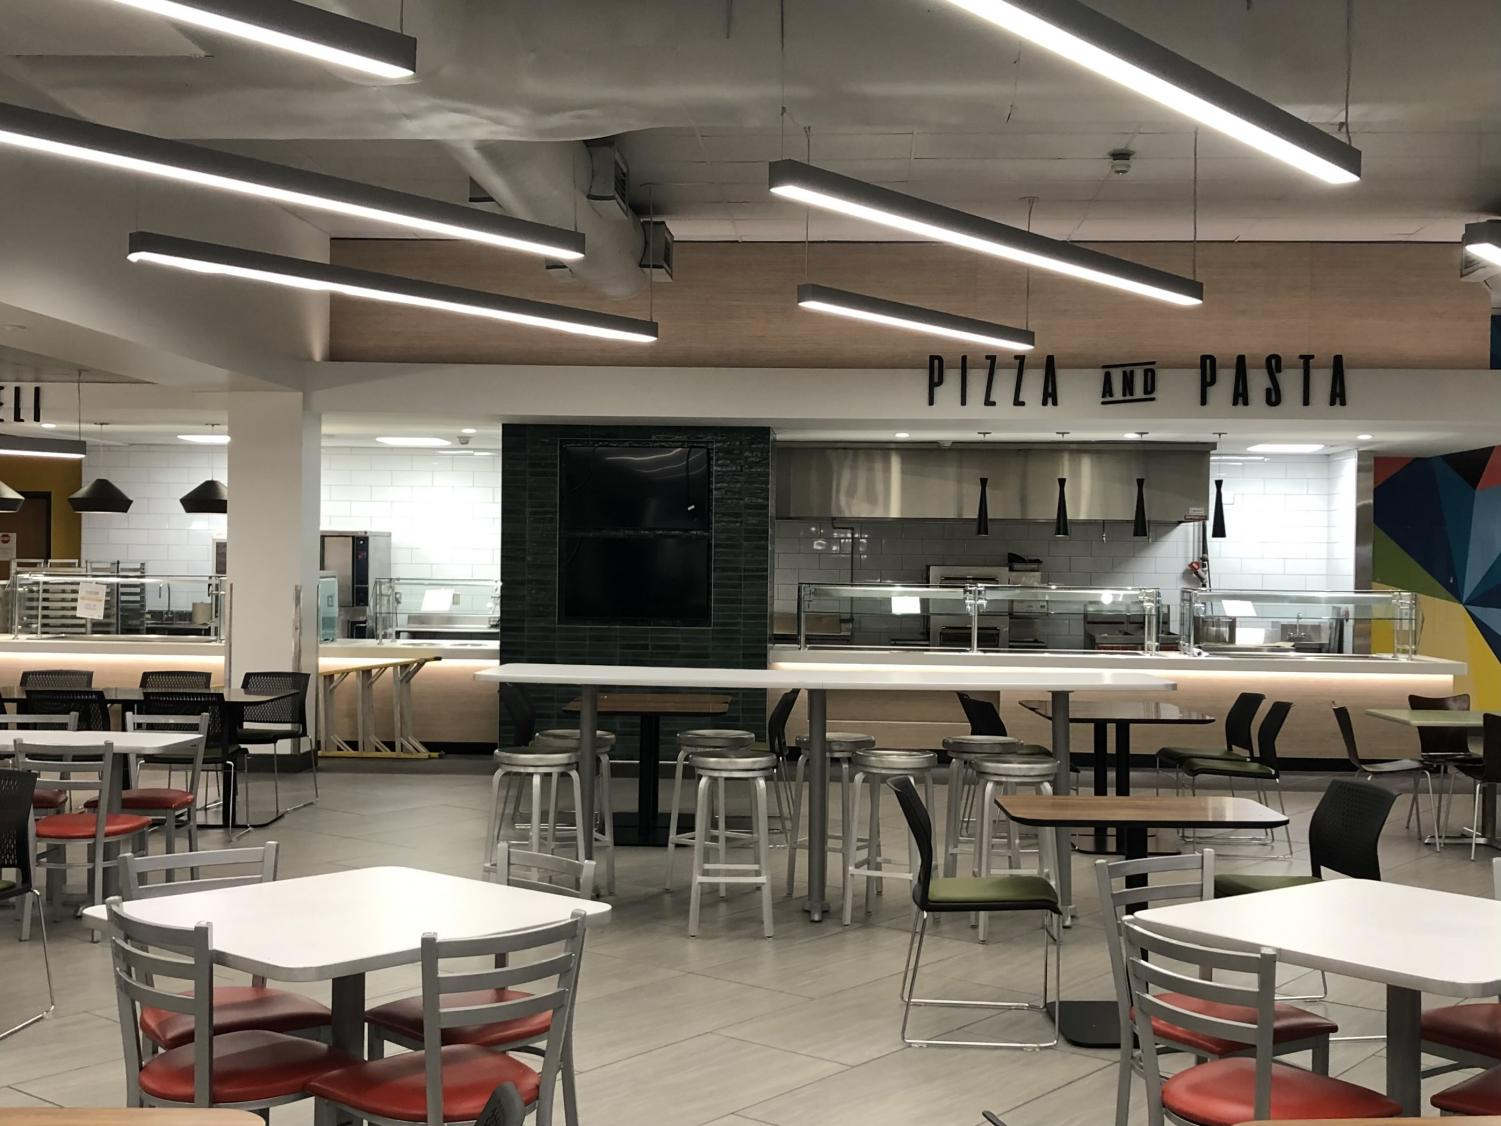 Todd+Dining+Hall+is+Open+Once+Again